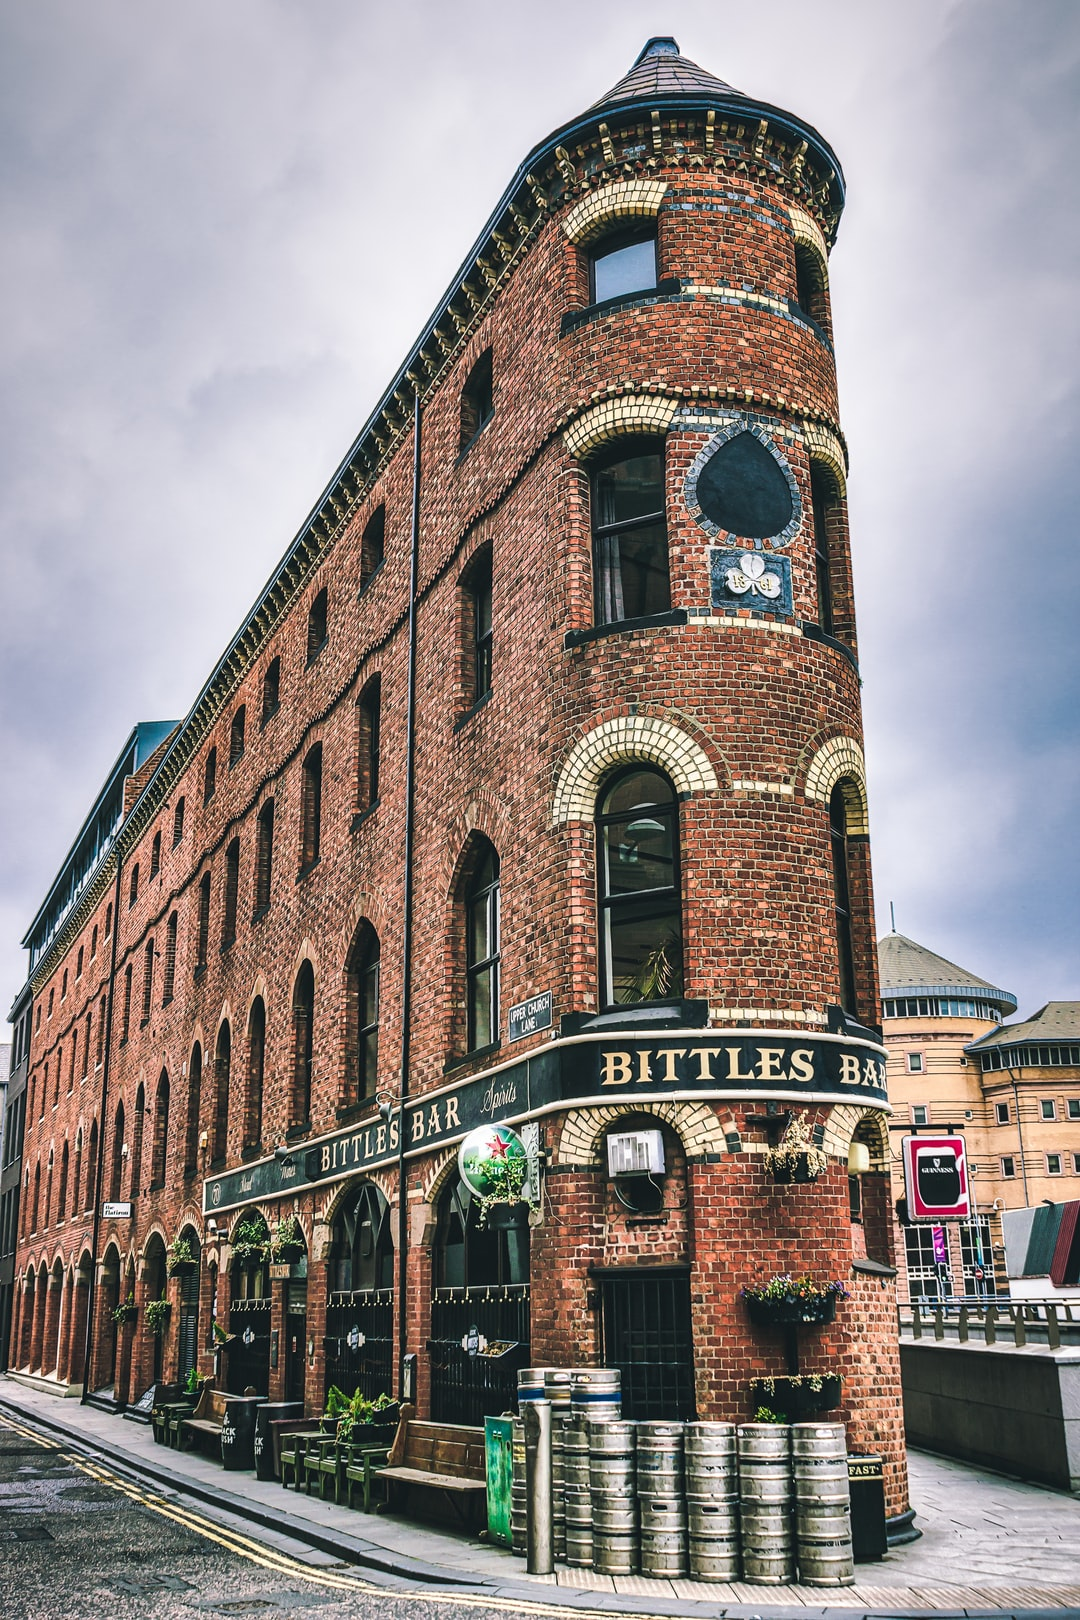 The Flat Iron Building, home to Bittles Bar, in Belfast's shopping district (May, 2020).